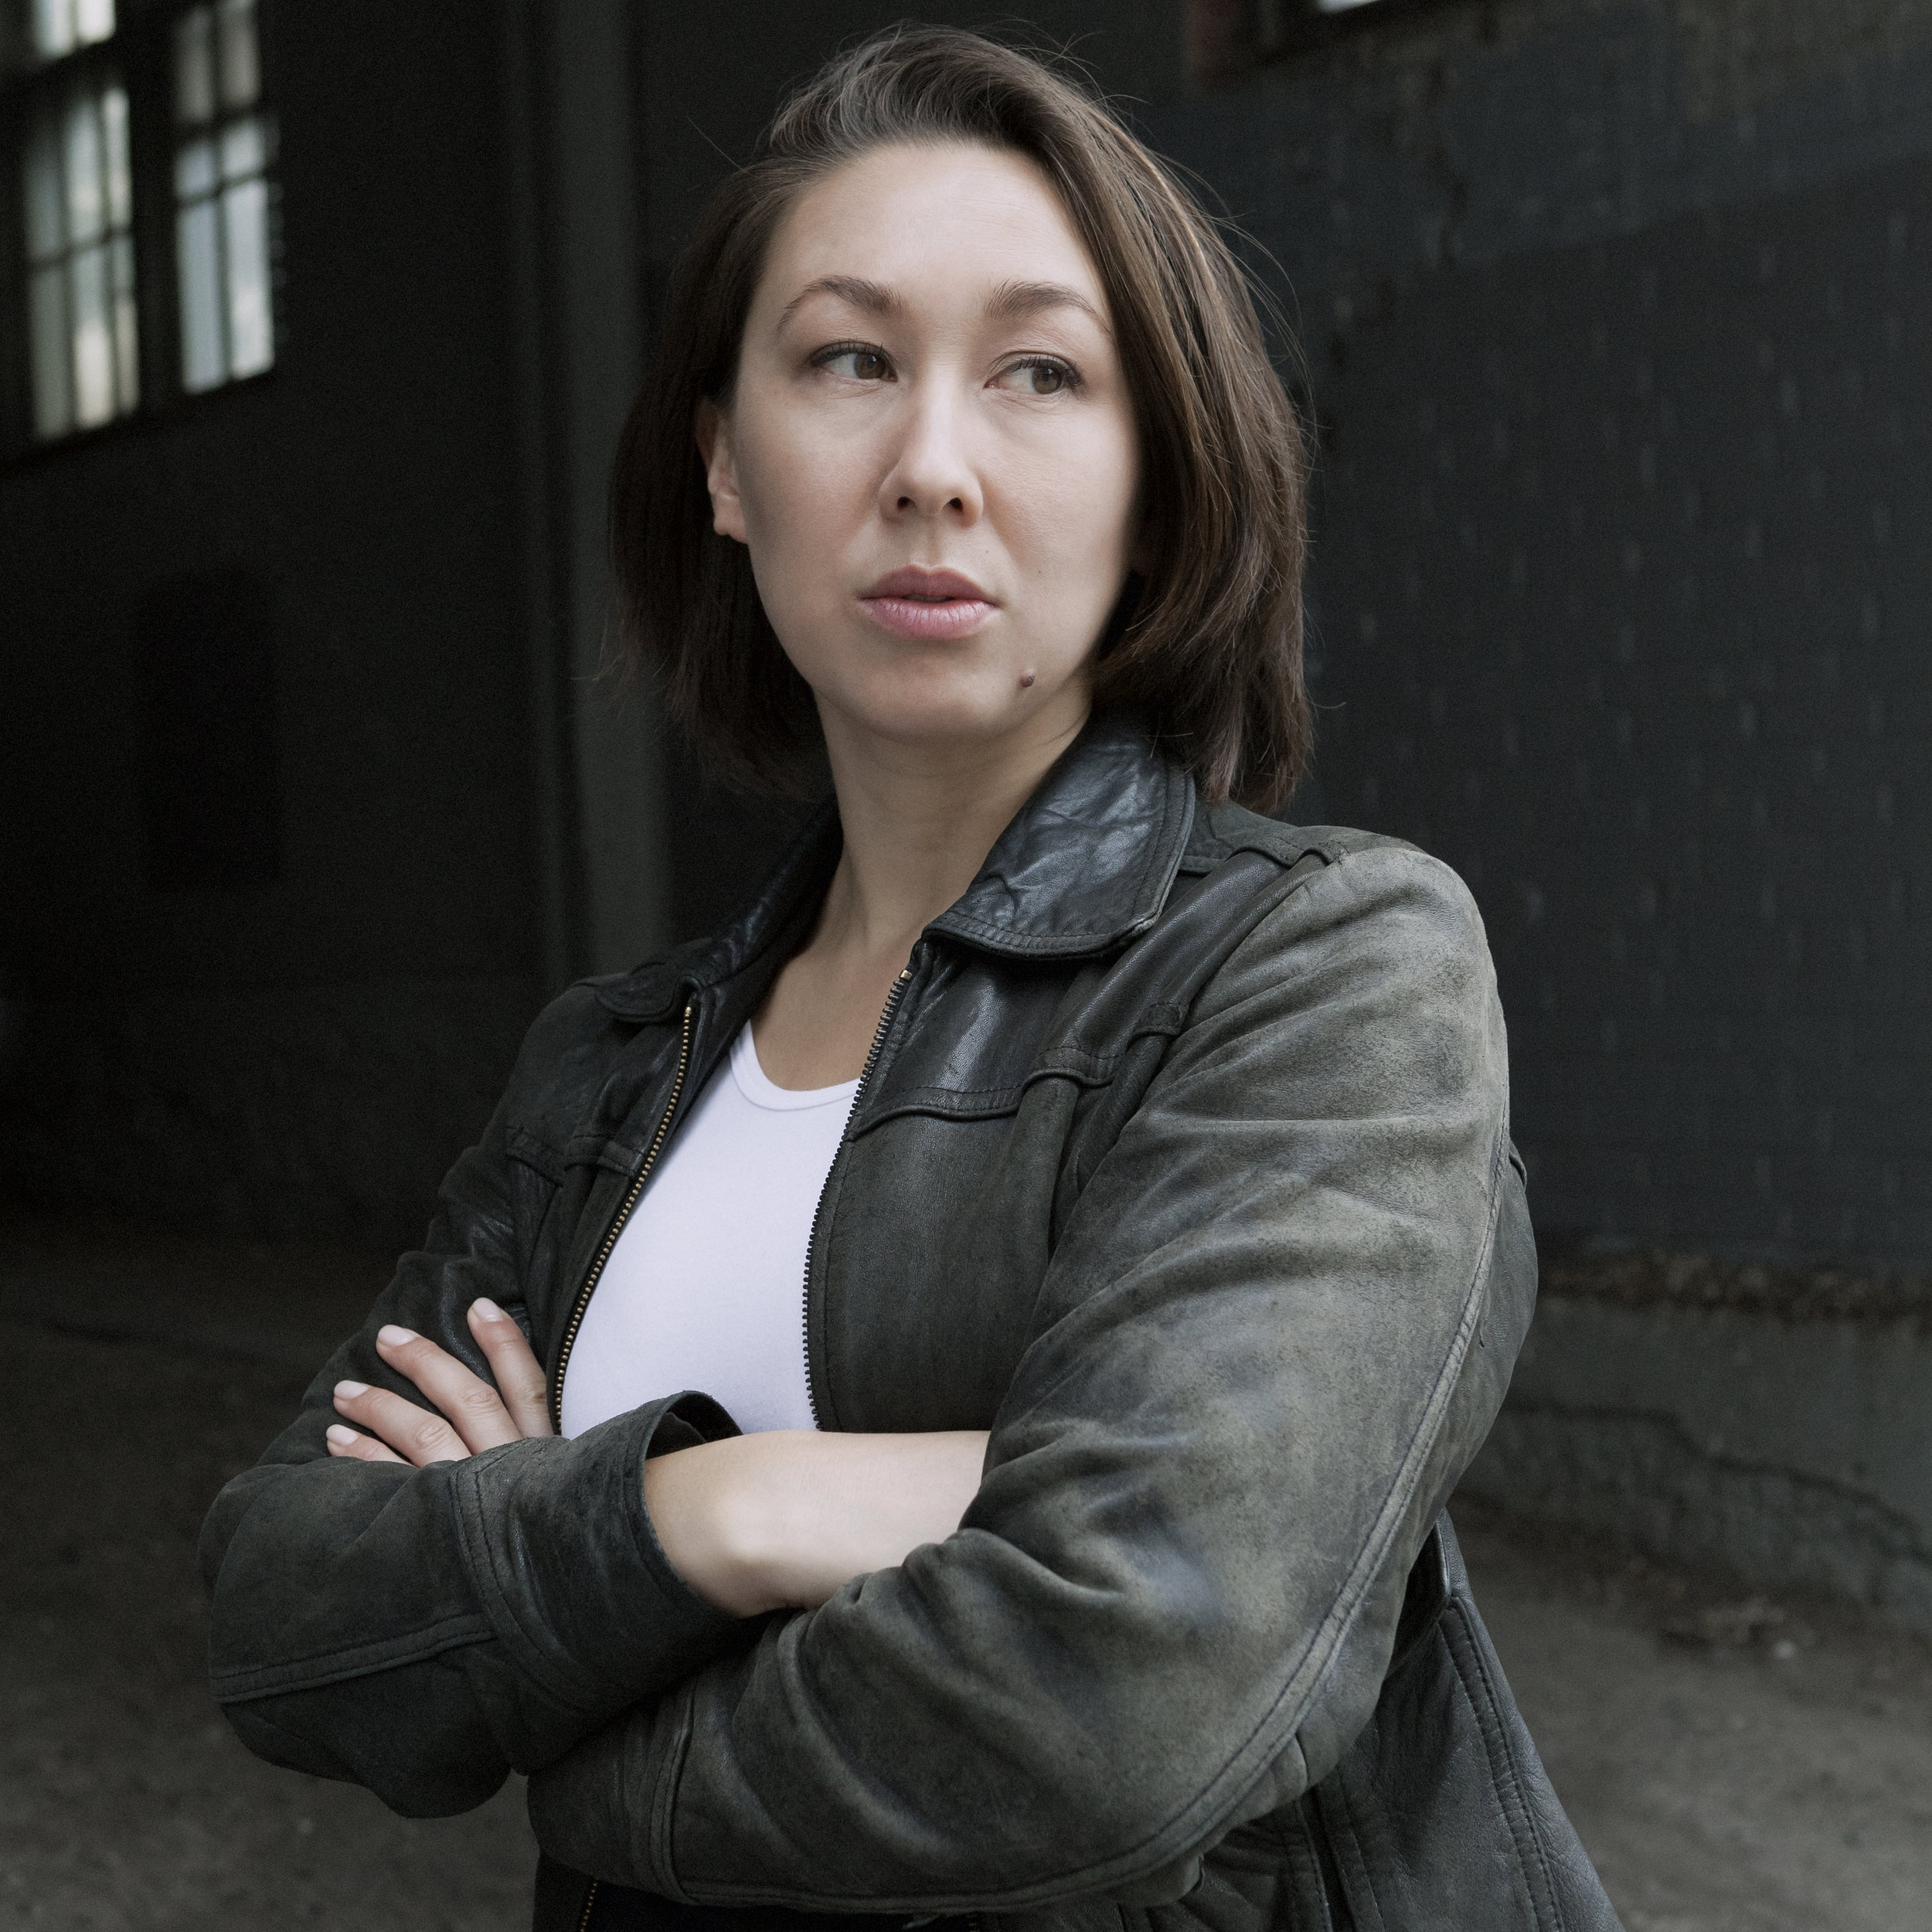 Aisling Chin-Yee - Aisling Chin-Yee is an award-winning producer, writer, and director based in Montreal, Canada. She is currently in post-production on her feature film directorial debut, The Rest of Us. Aisling founded Fluent Films in early 2016. She co-created, #AfterMeToo, aimed to analyze the issue of sexual misconduct in the entertainment industry. In 2018 she was selected for the 50 Women Change the World in Media and Entertainment in Hollywood.Her feature drama The Day Between will be shot in 2018, and is executive produced by Jean-Marc Vallée, with the financial support of Telefilm Canada and The Harold Greenberg Fund.As part of our filmmaking community, Aisling often participates on international film and industry juries, like Fantasia, FIN, and The Toronto International Film Festival's Pitch This! Competitions. She is also a Berlinale Talent Alumni, a Rotterdam Producer's Network Alumni, a Tribeca Film Institute Alumni, and currently part of the prestigious Academy Women Director Mentorship Program. She is also on the board of Women in View.